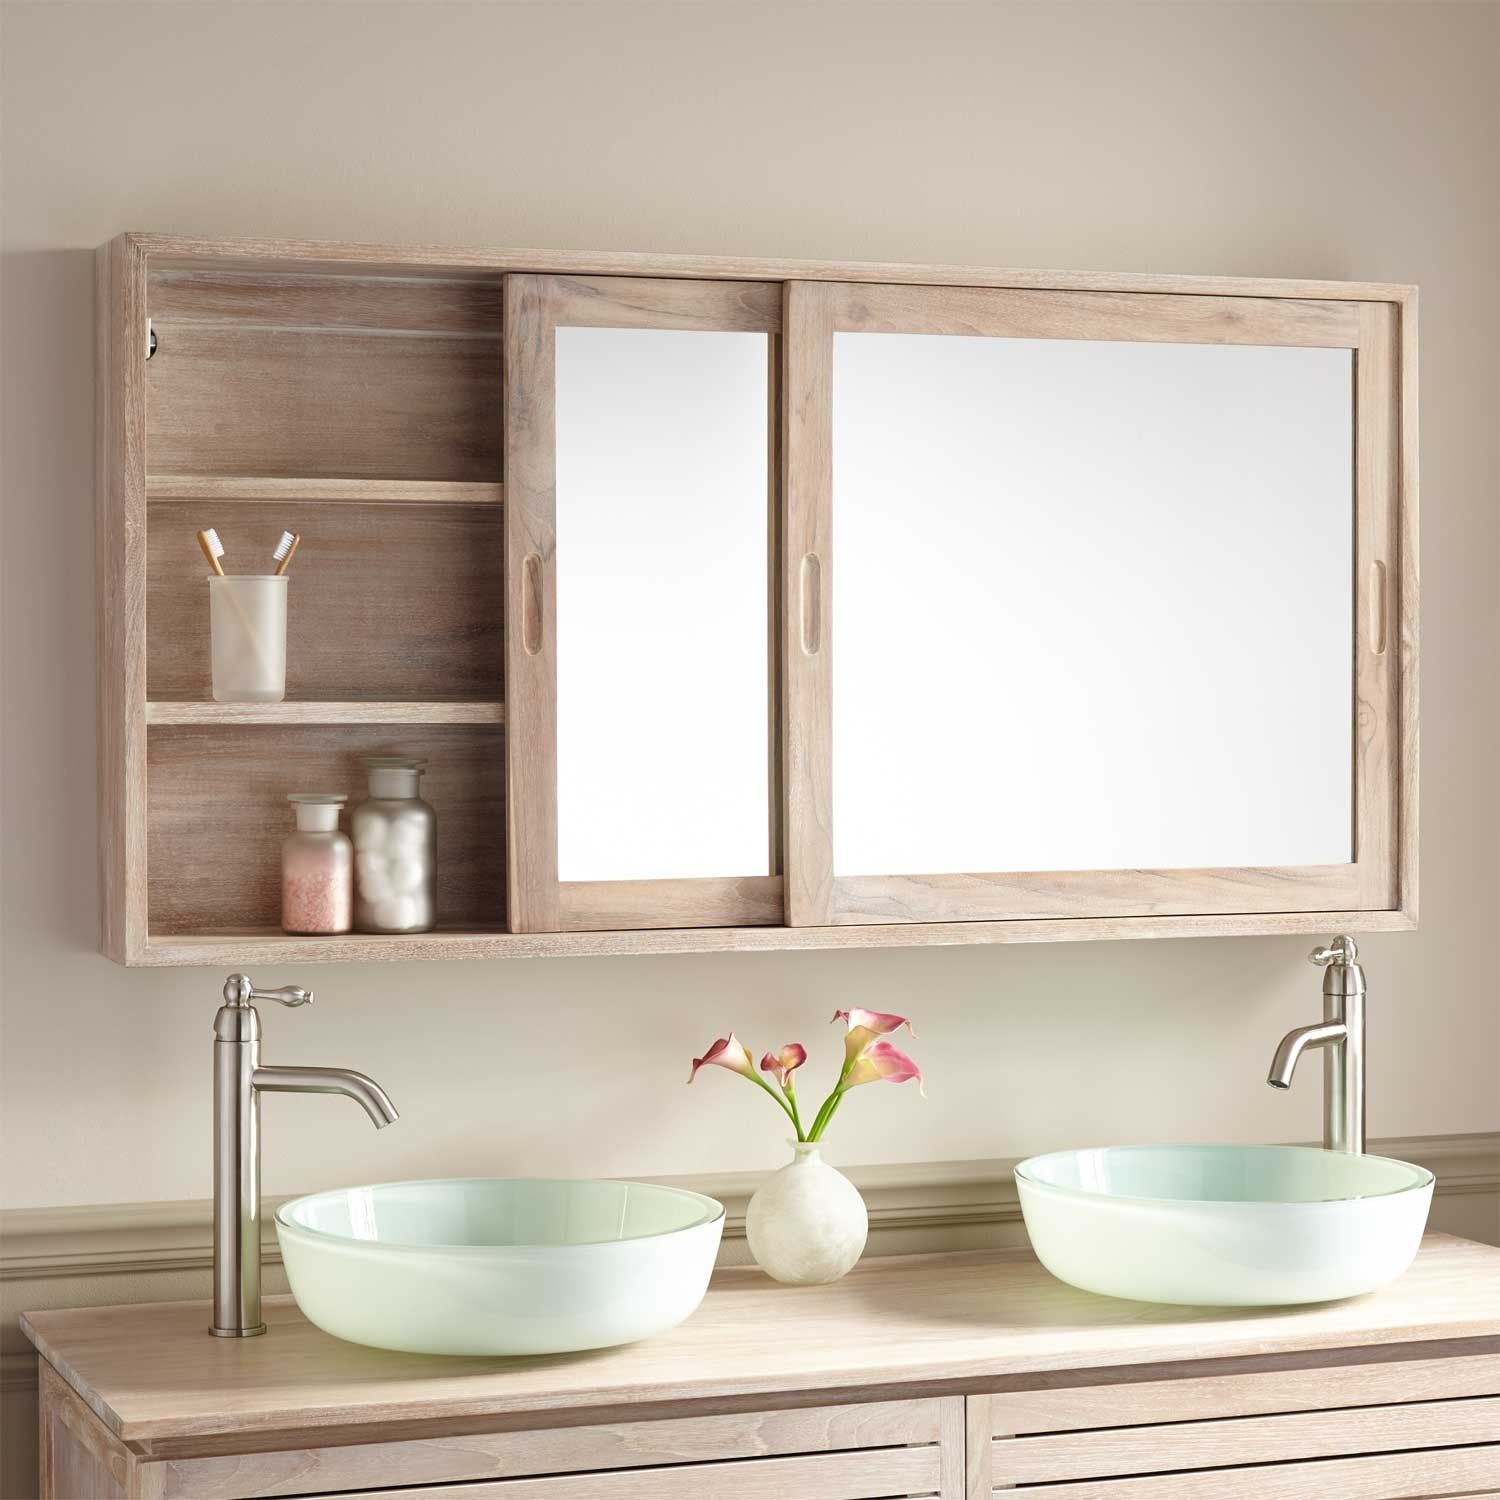 Teak bathroom storage cabinet - Beautiful And Useful The Wulan Teak Medicine Cabinet Is The Perfect Addition To A Bathroom In Need Of Additional Storage Space Behind The Sliding Mirrored